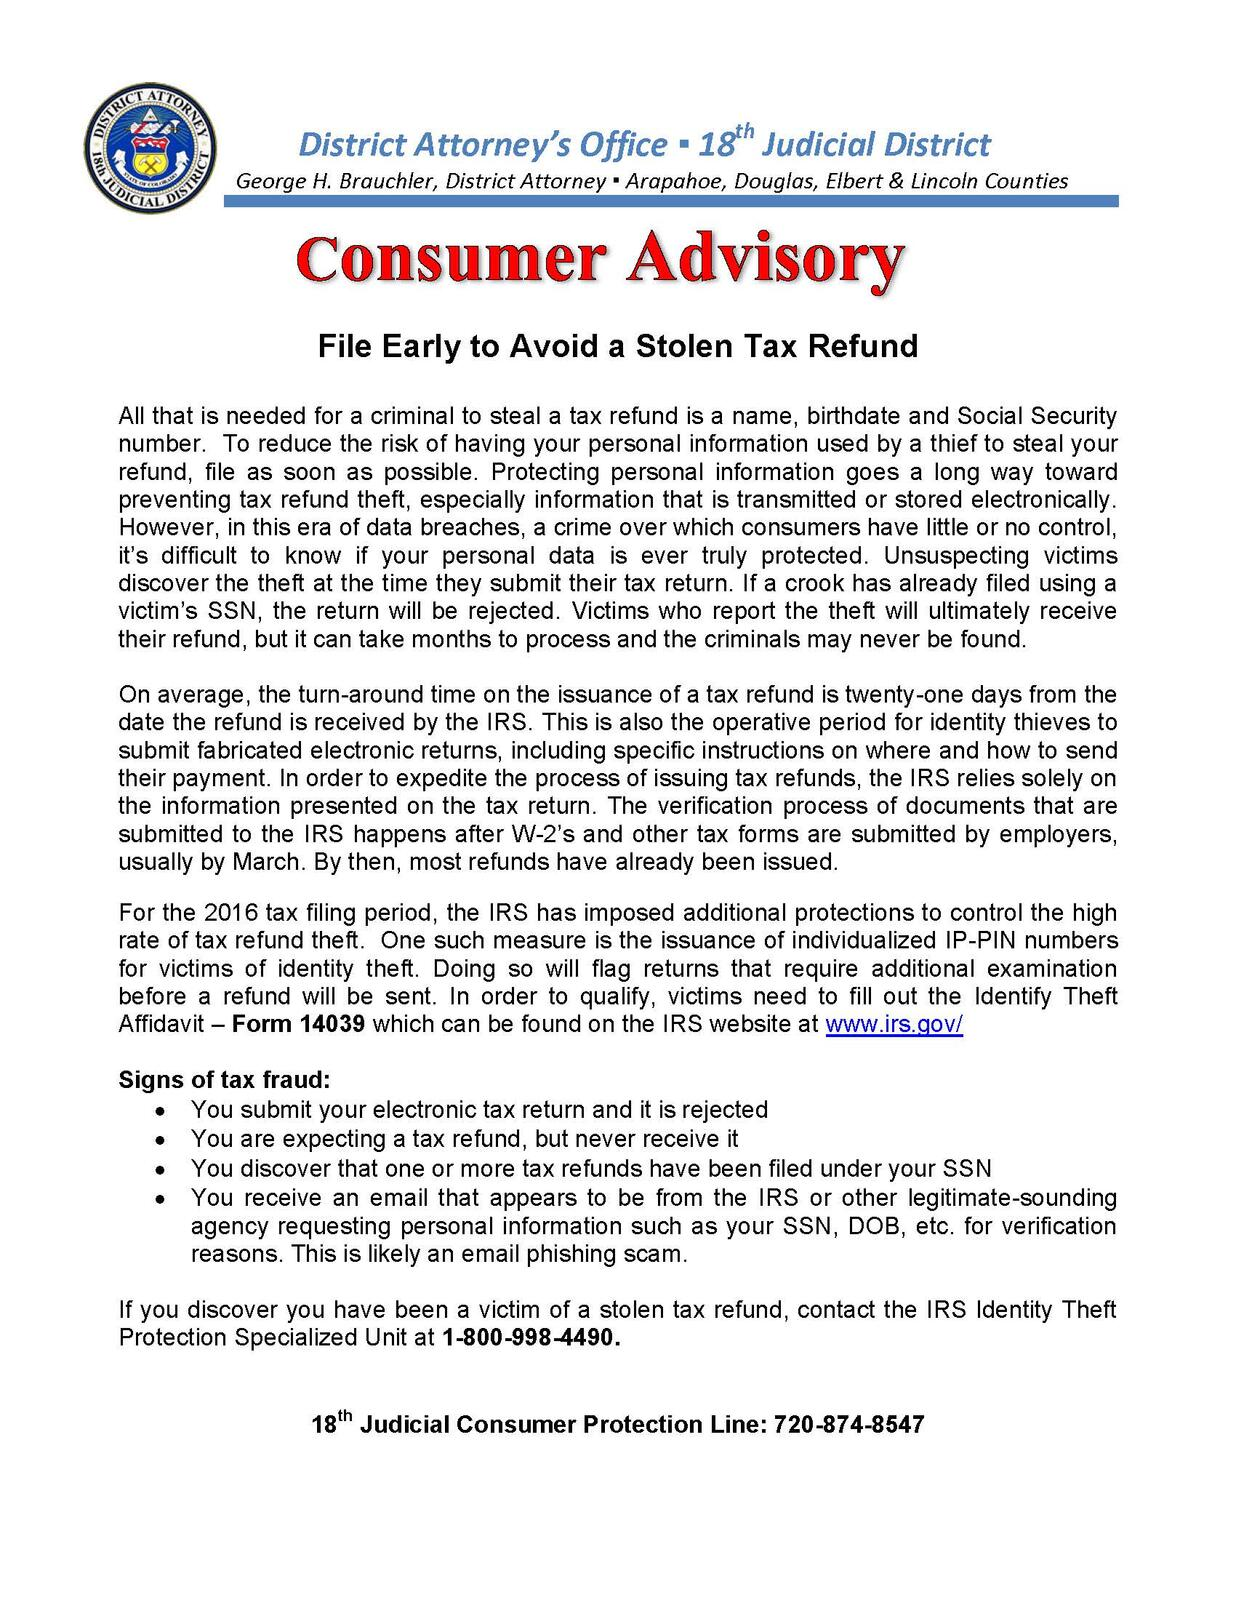 Consumer Advisory- File Early to Avoid a Stolen Tax Refund